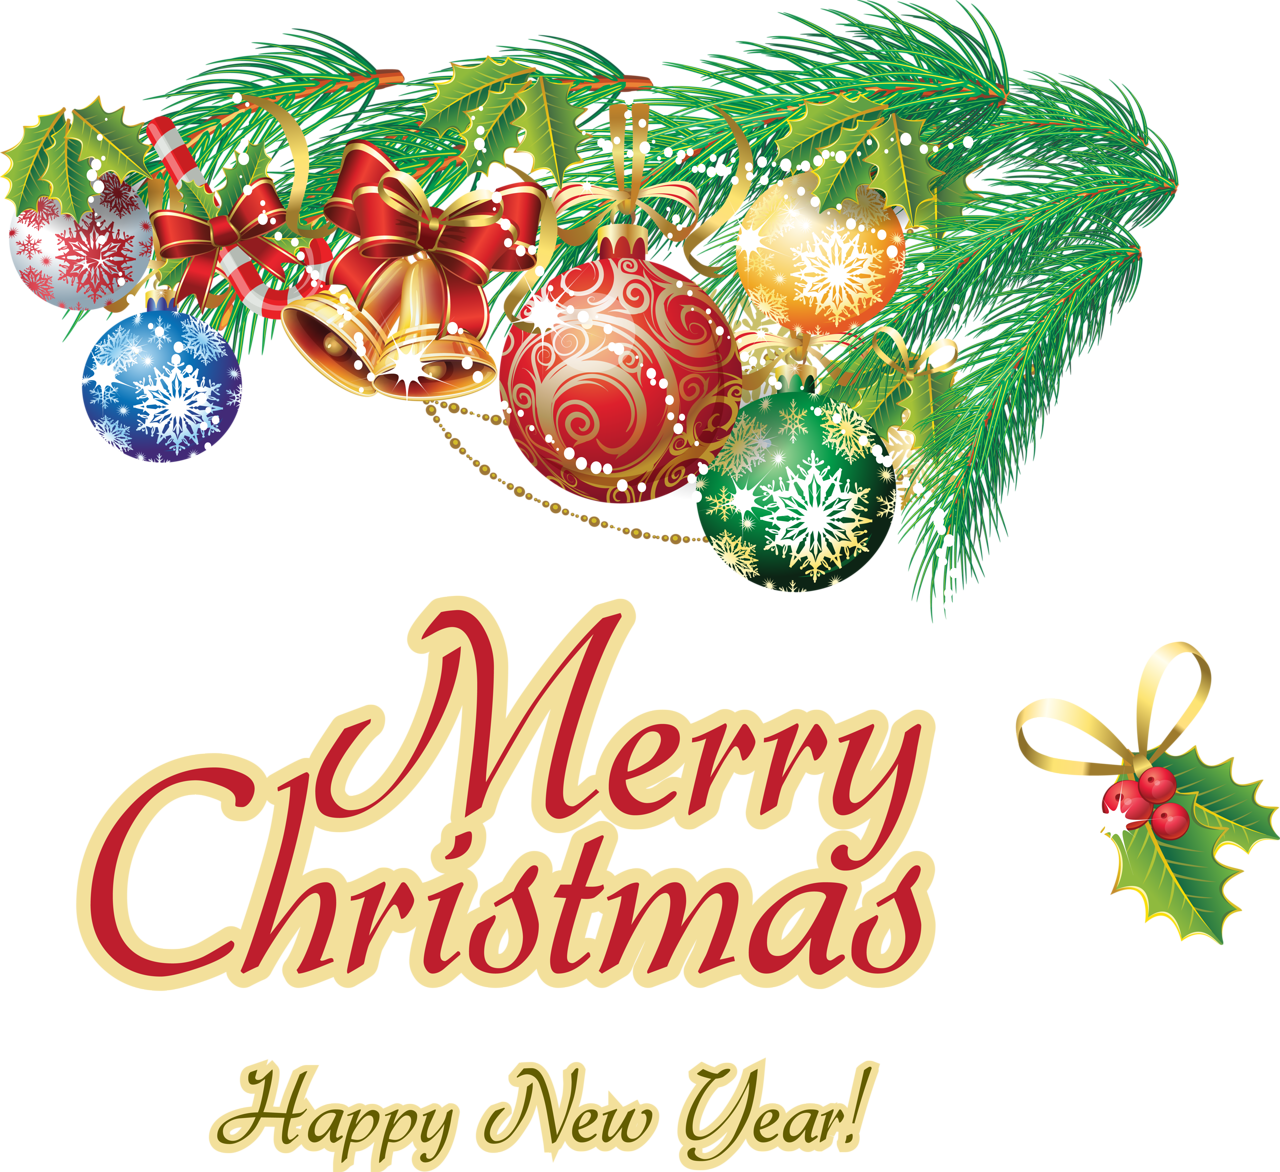 download klipart merry christmas and happy new year nadpis merry christmas and happy new year full size png image pngkit download klipart merry christmas and